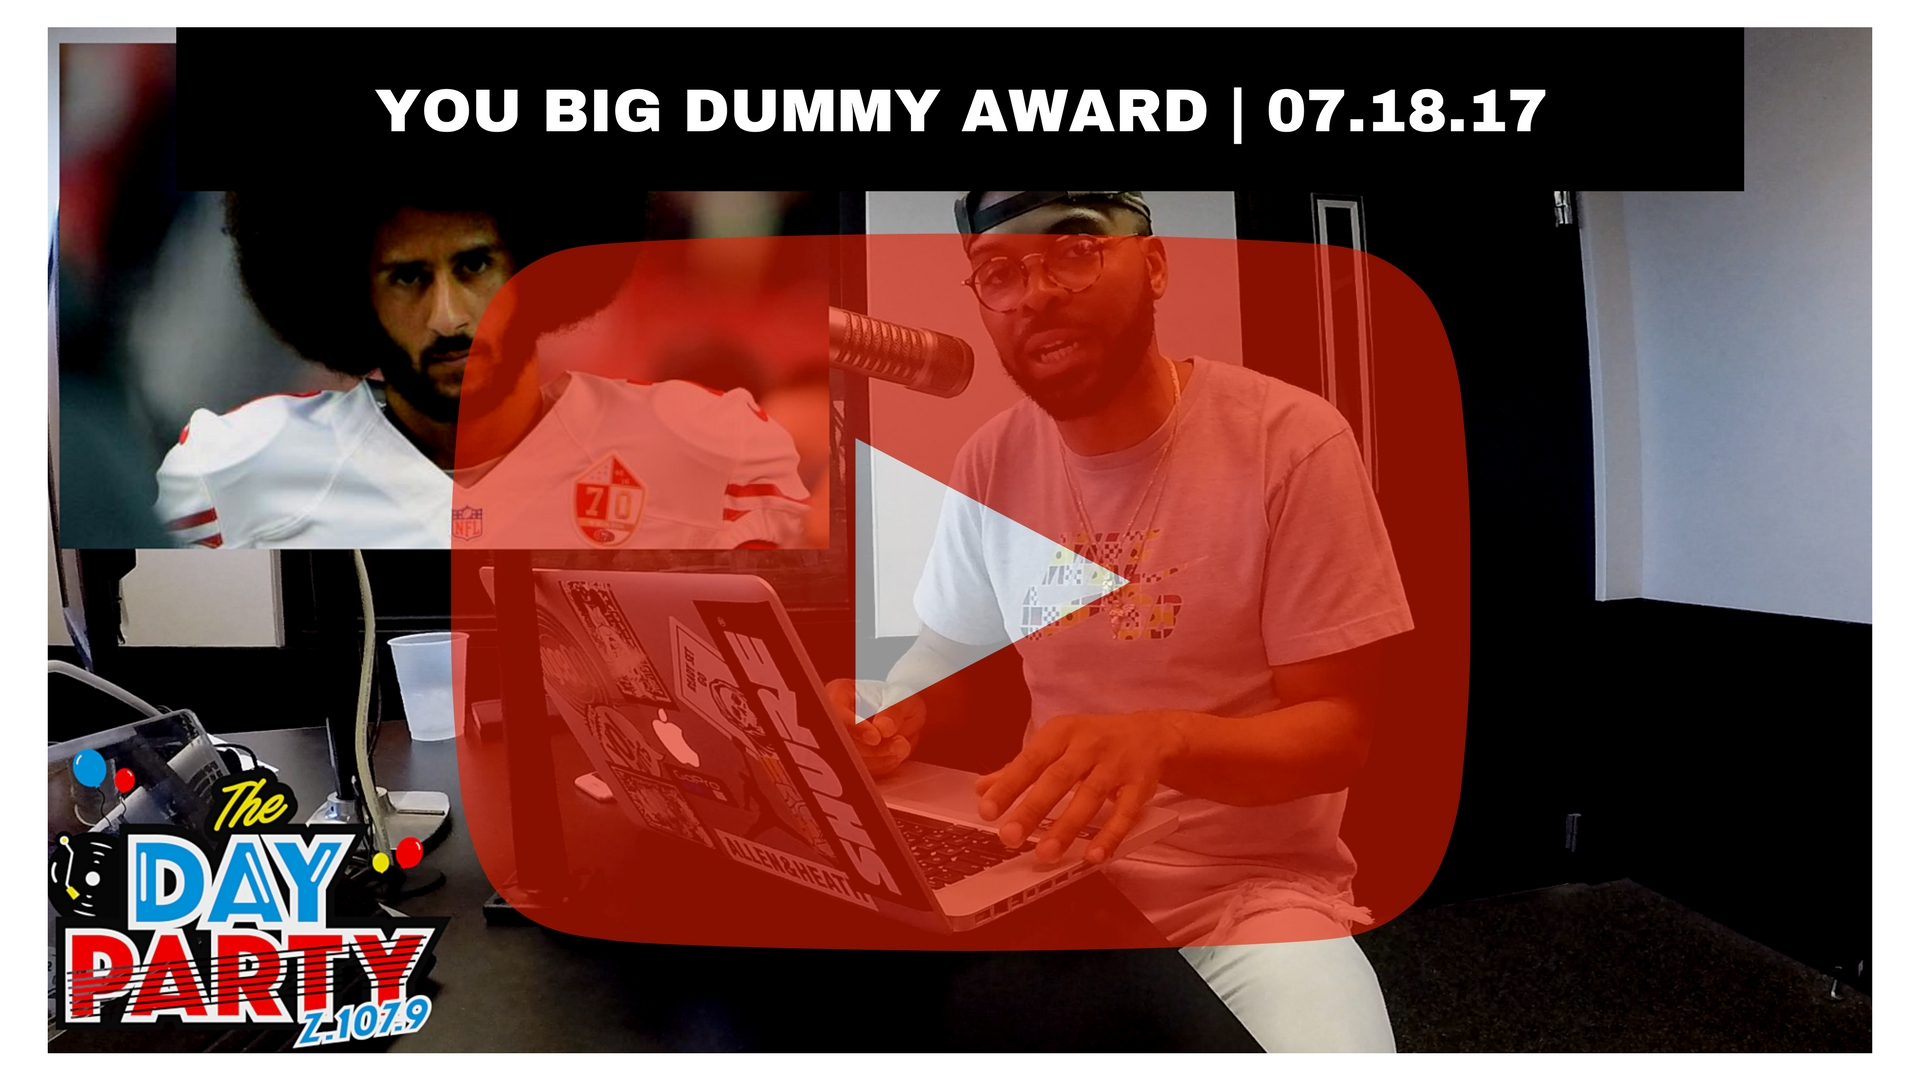 YOU BIG DUMMY AWARD _ 07.18.17